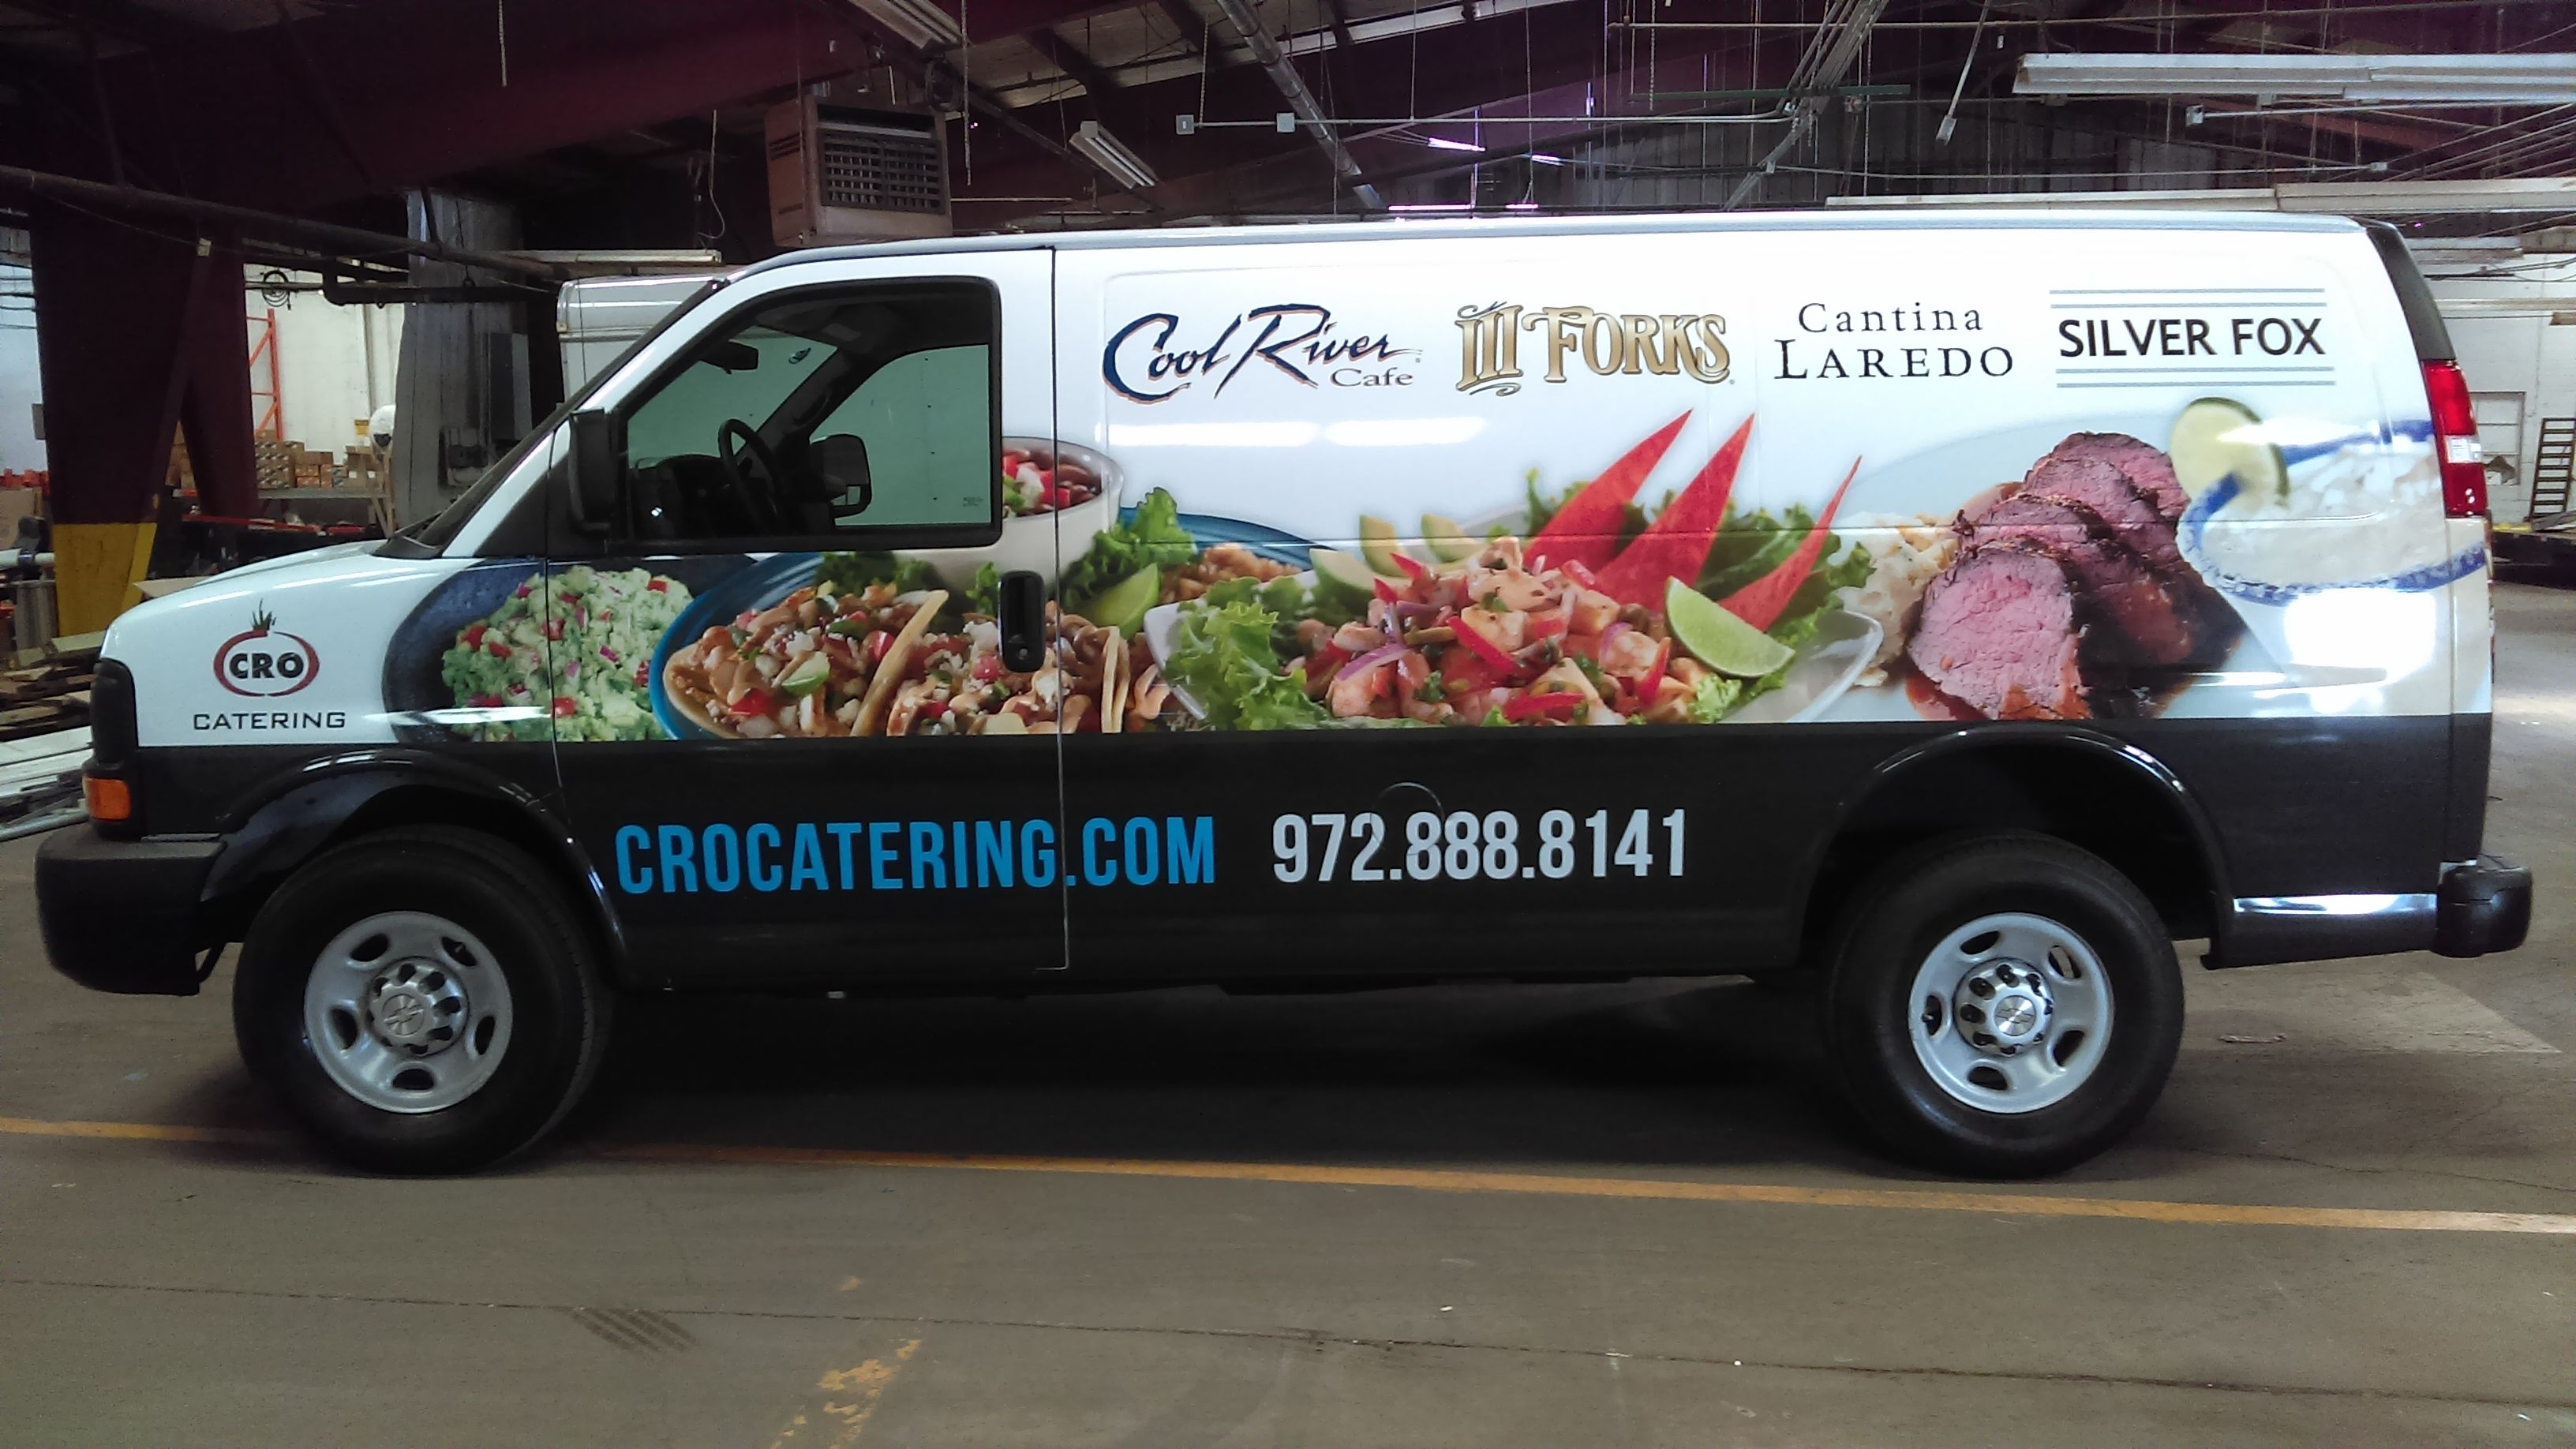 2015 Chevy Express Catering Van With Custom Skinzwrap For Cro